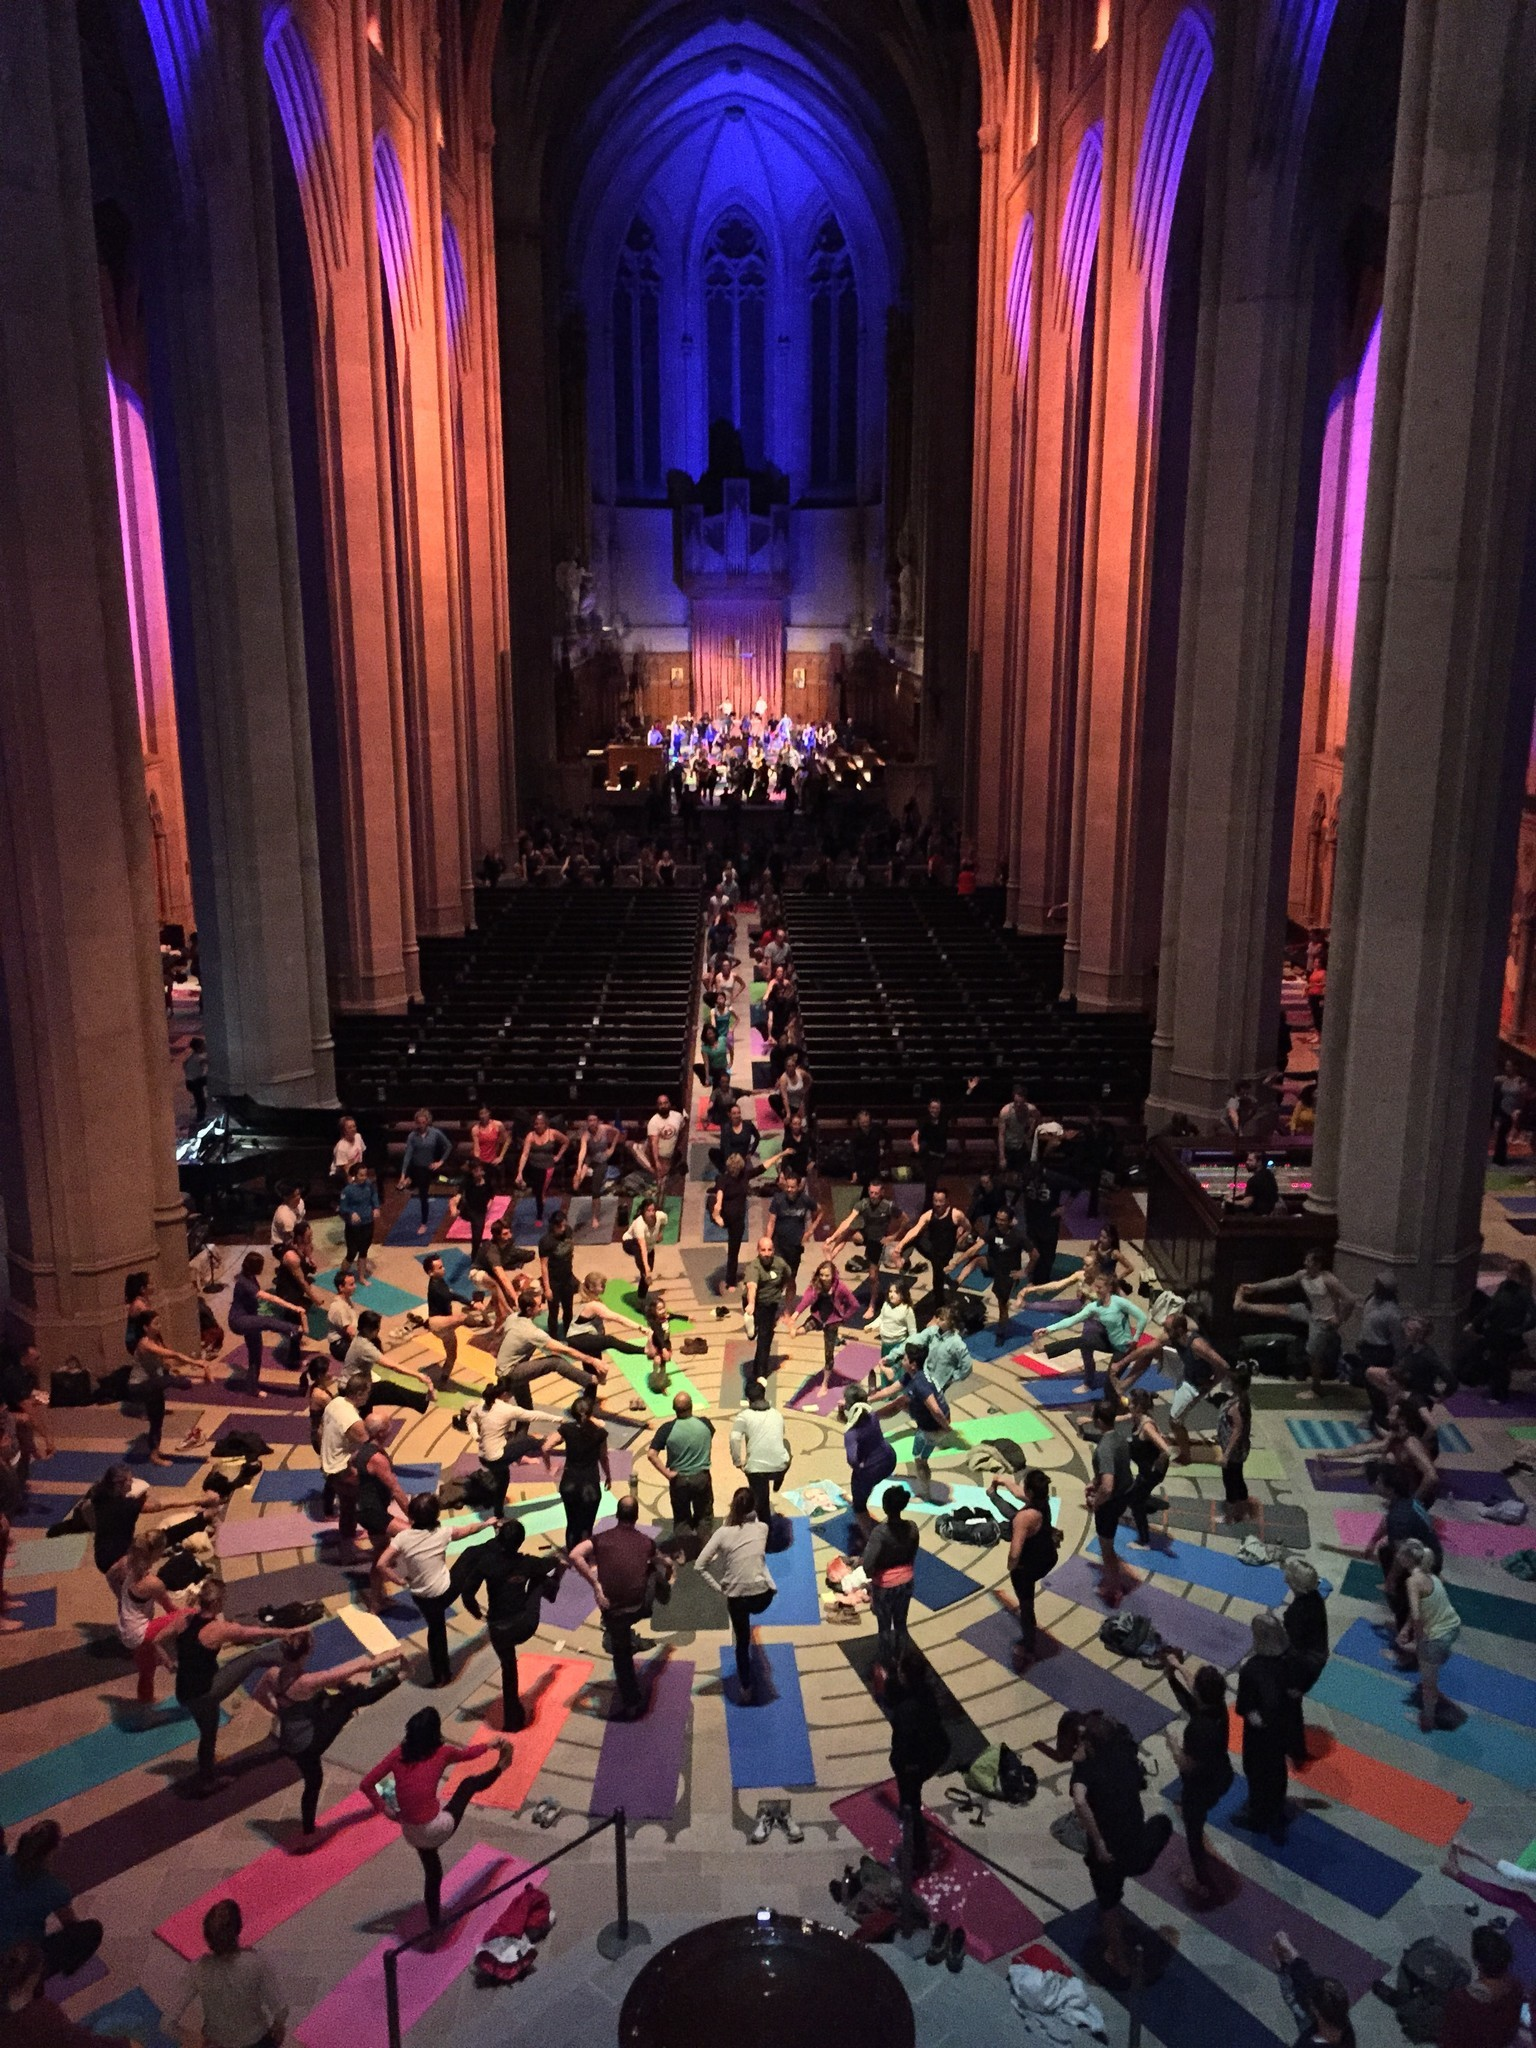 Bring your yoga mat for a session at San Francisco's Grace Cathedral.